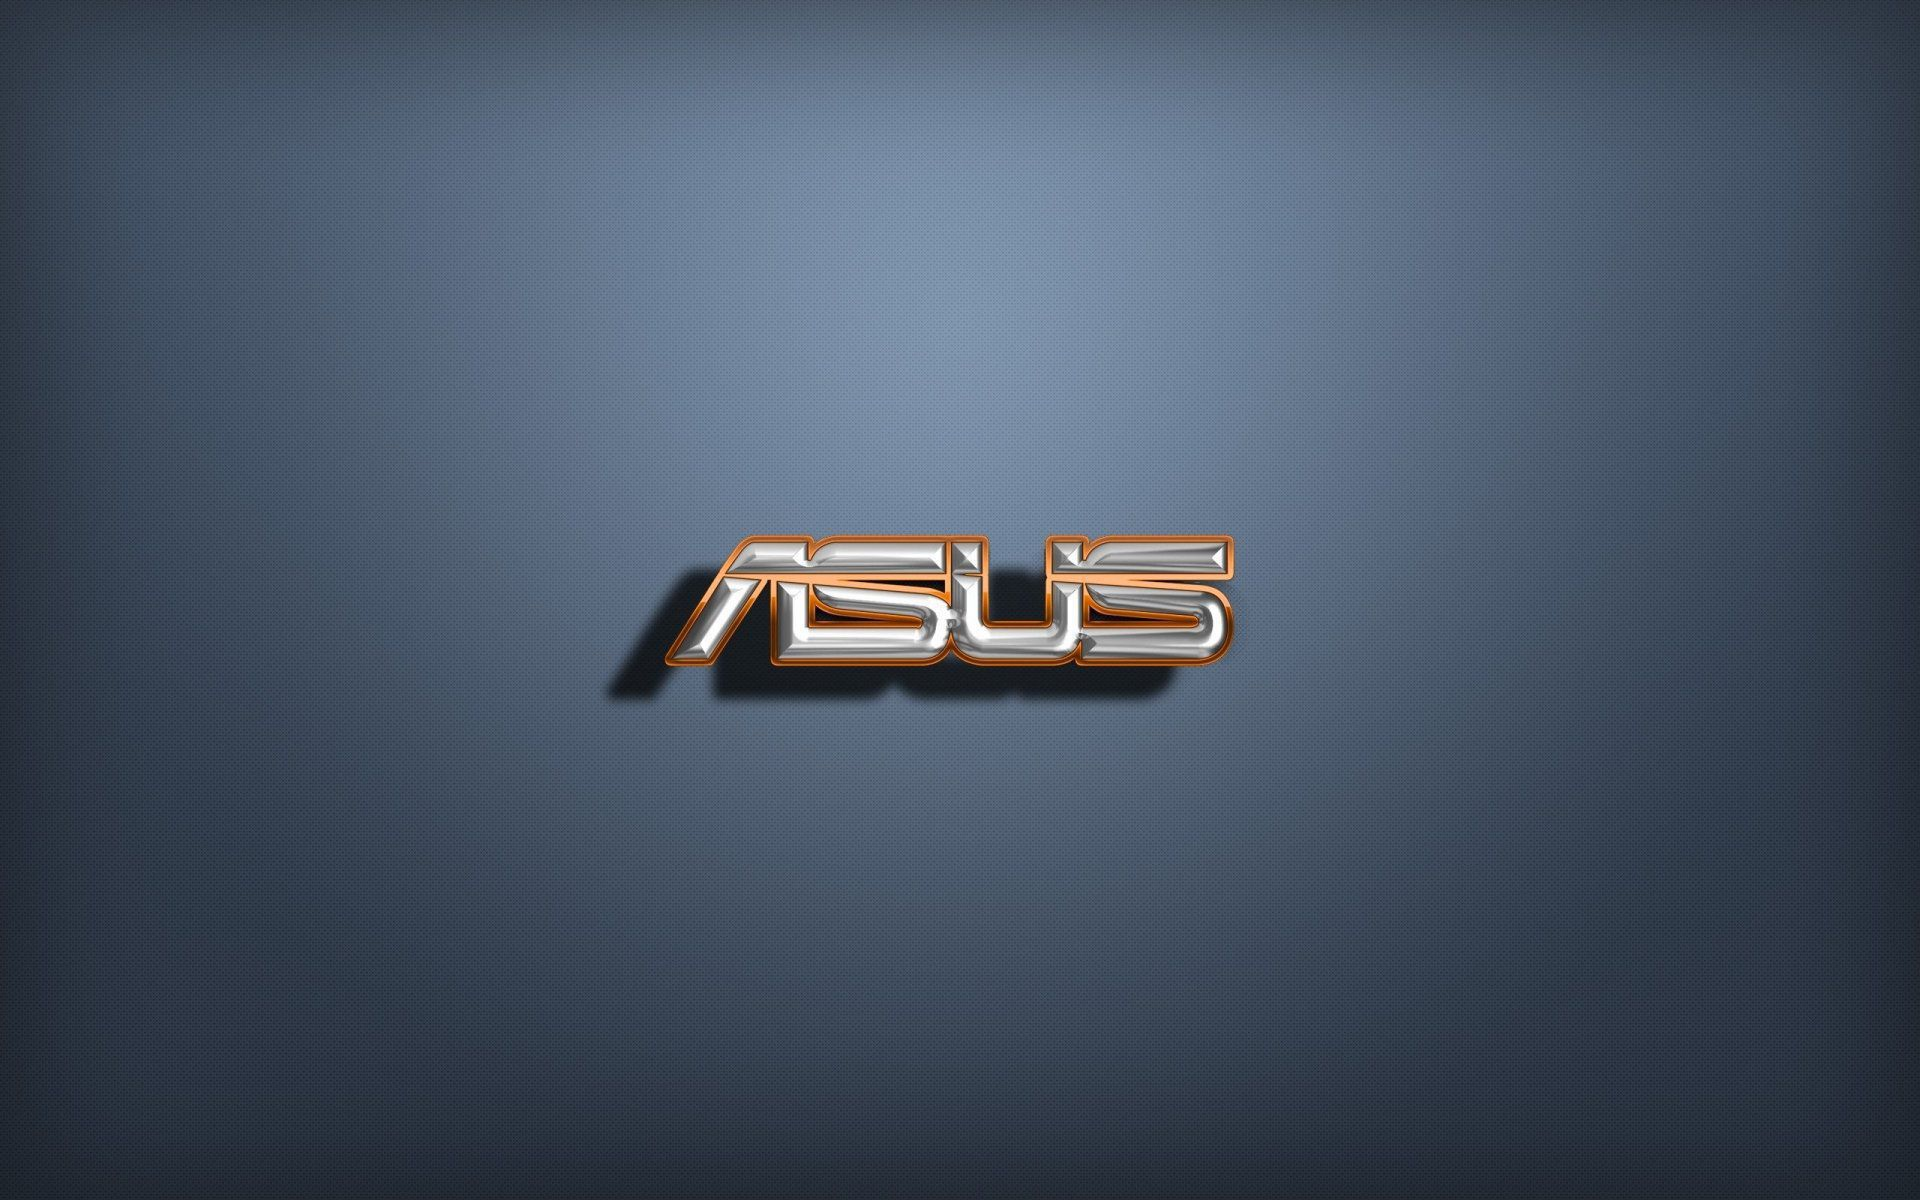 Asus Computer Backgrounds